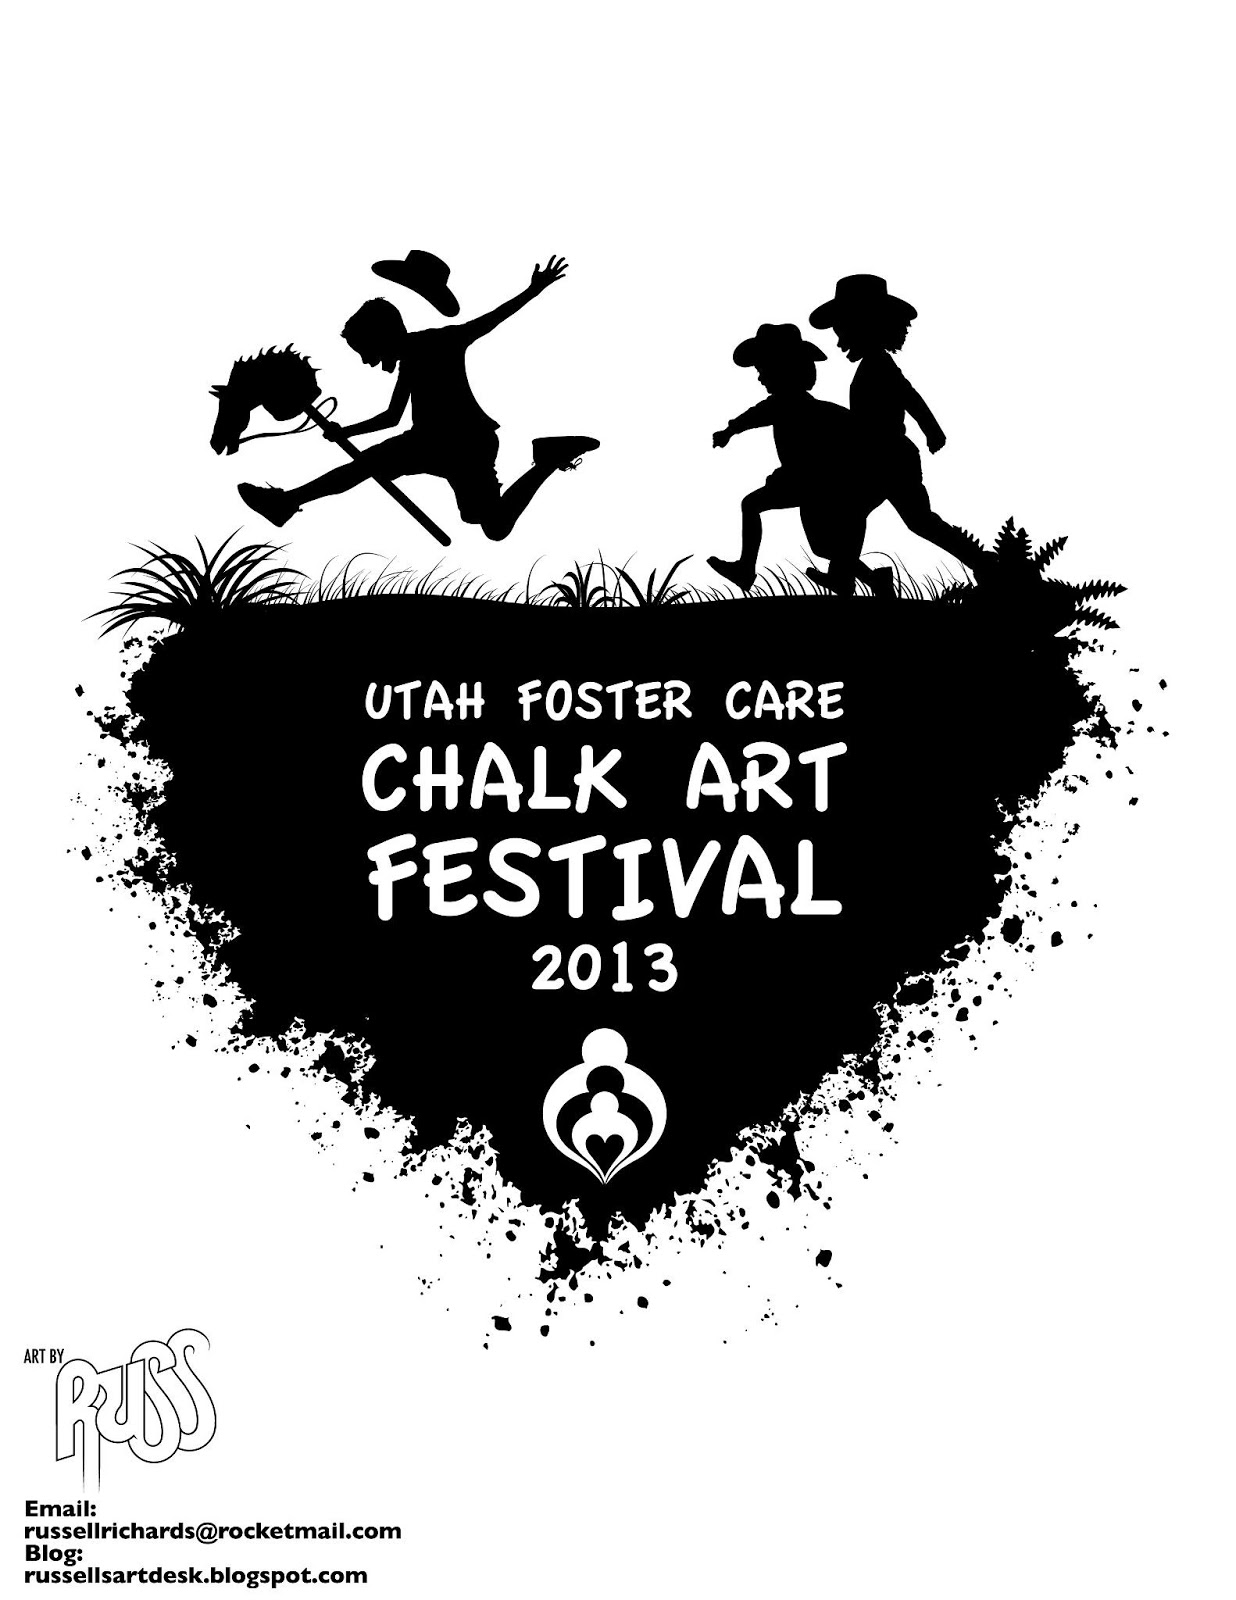 Shirt design utah - I Entered T Shirt Contest For The Utah Foster Care Chalk Art Festival Coming Up This June My Design Won The Theme For This Year S Chalk Art Festival Is